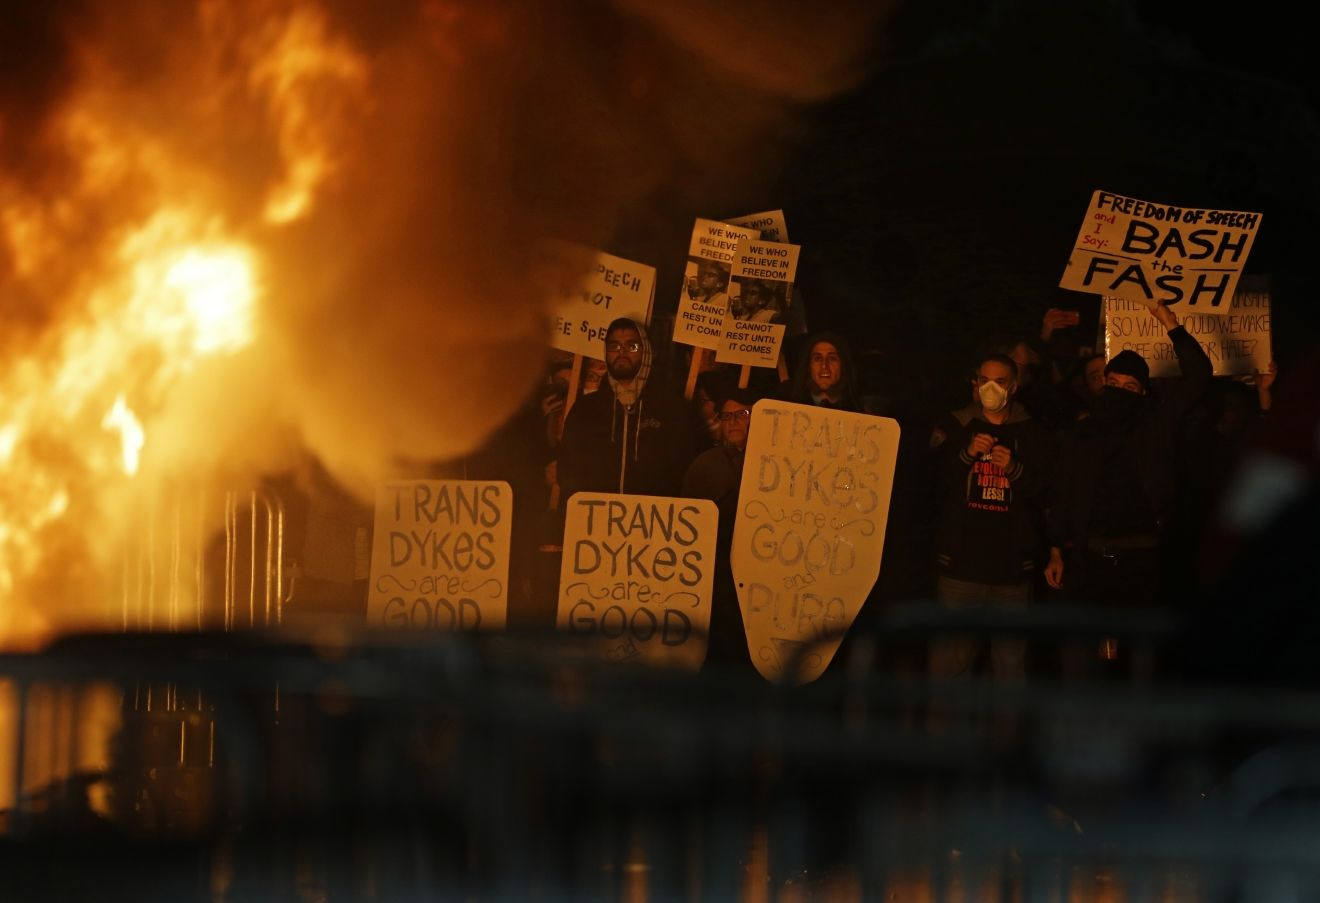 Protestors watch a fire on Sproul Plaza during a rally against the scheduled speaking appearance by Breitbart News editor Milo Yiannopoulos on the University of California at Berkeley campus on Wednesday, Feb. 1, 2017, in Berkeley, Calif. (AP Photo/Ben Margot)